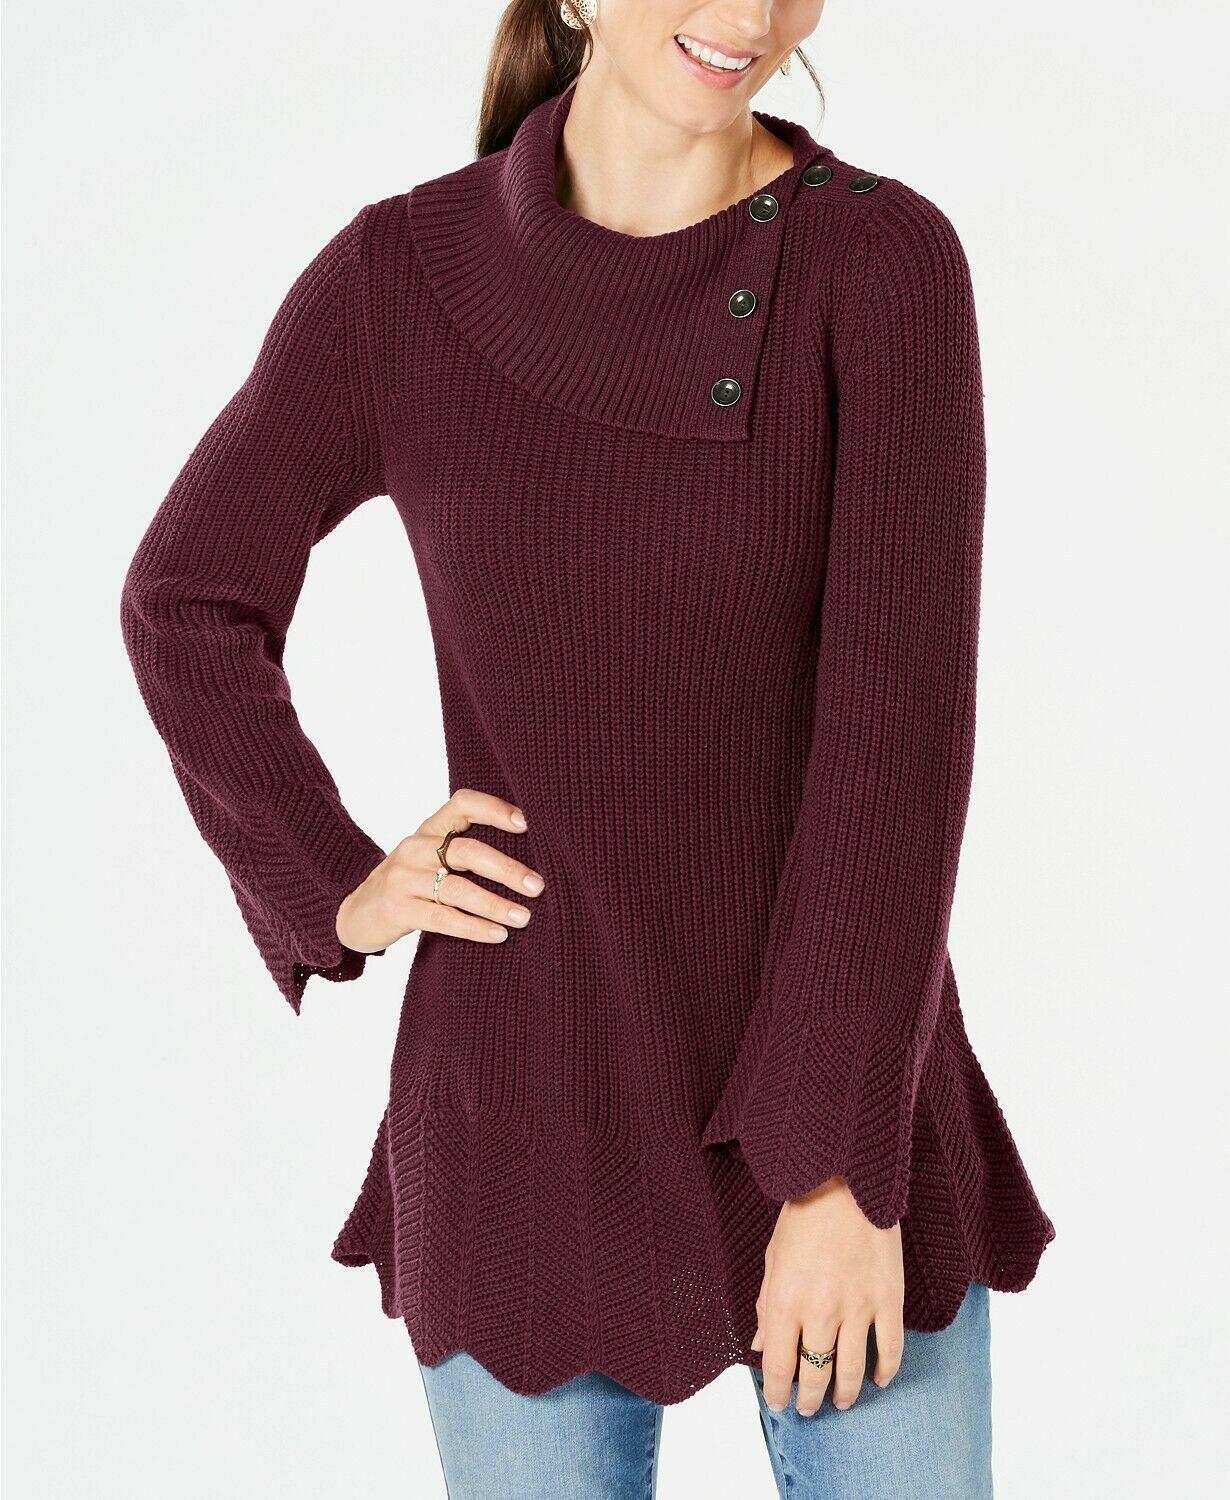 Primary image for Style & Co WOMEN'S Petites Scallop-Edge Sweater SCARLET WINE SIZE PS